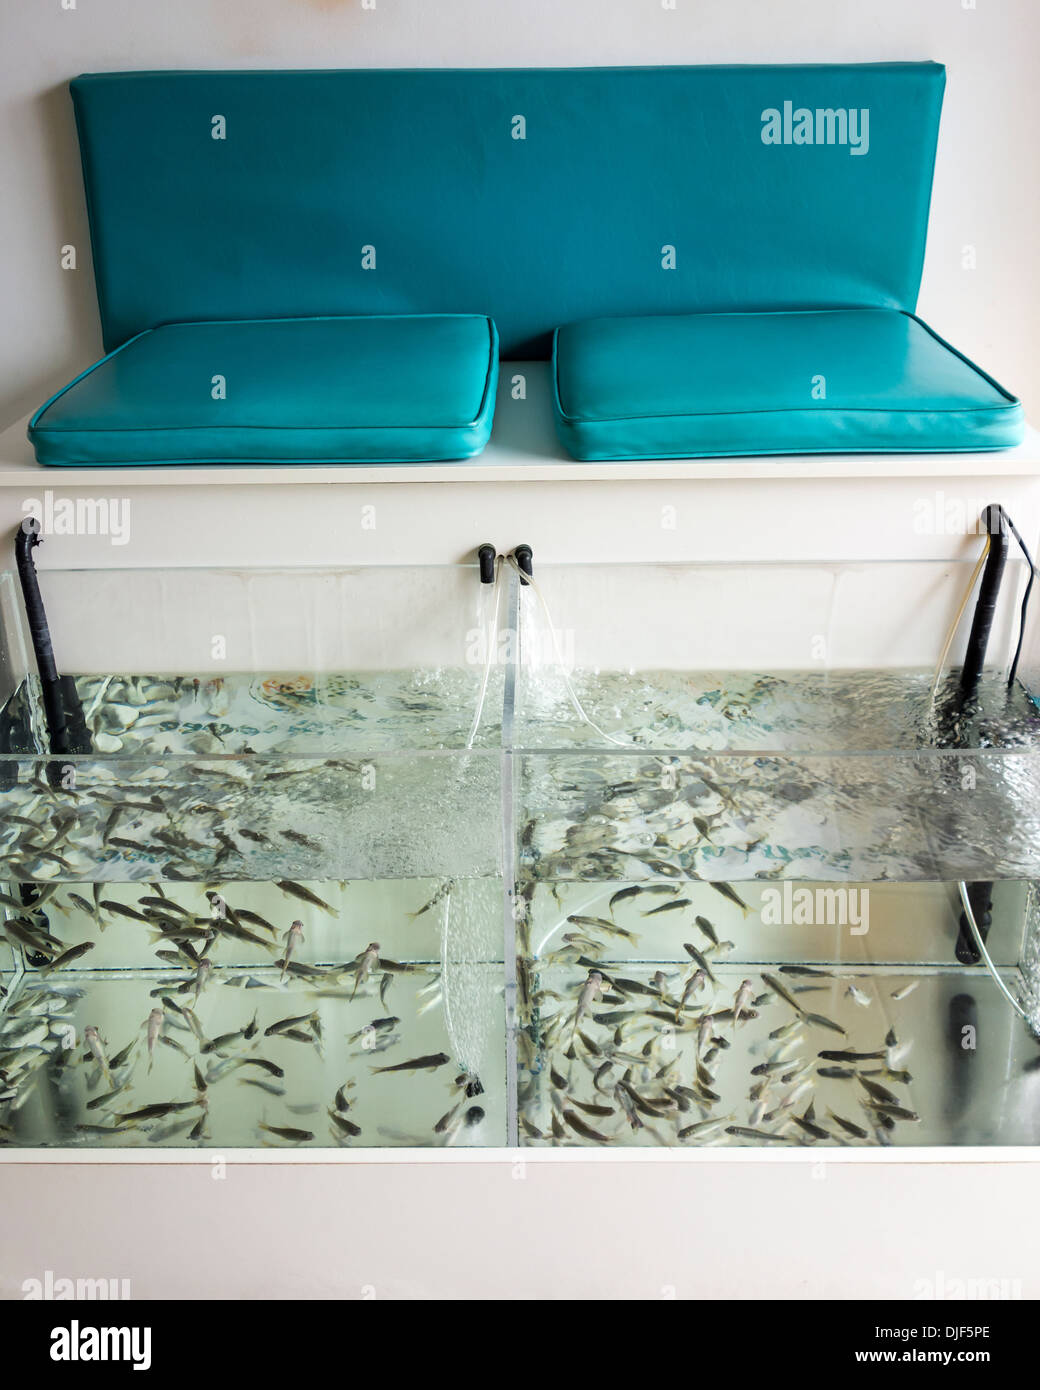 Filtered fish Spa treatment - Stock Image